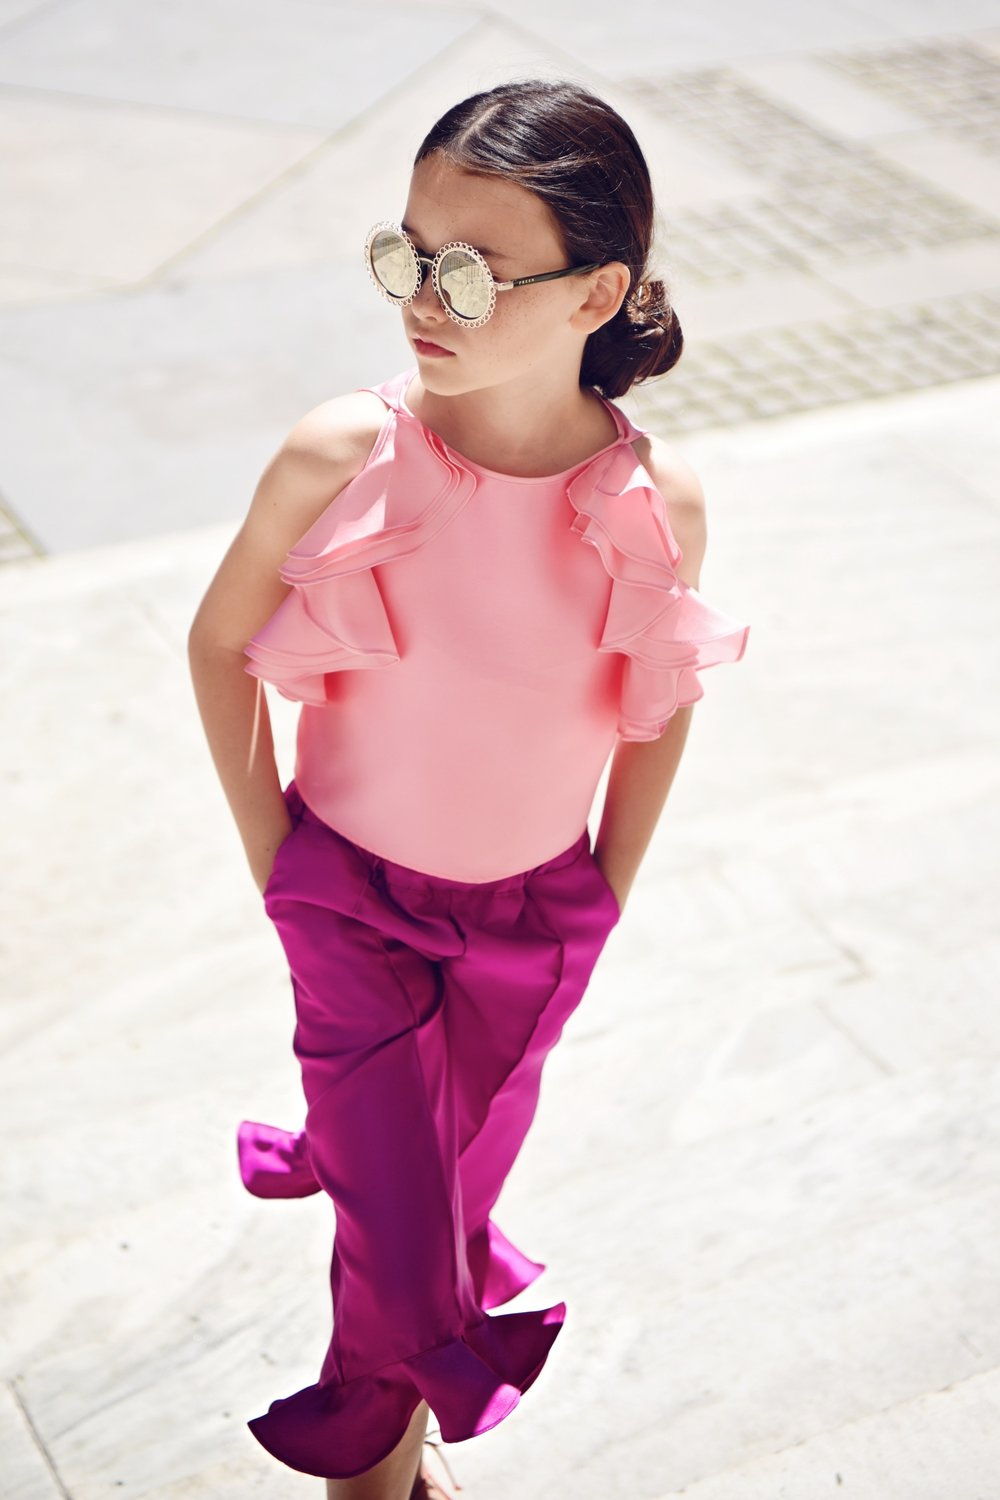 Enfant+Street+Style+by+Gina+Kim+Photography-9.jpeg